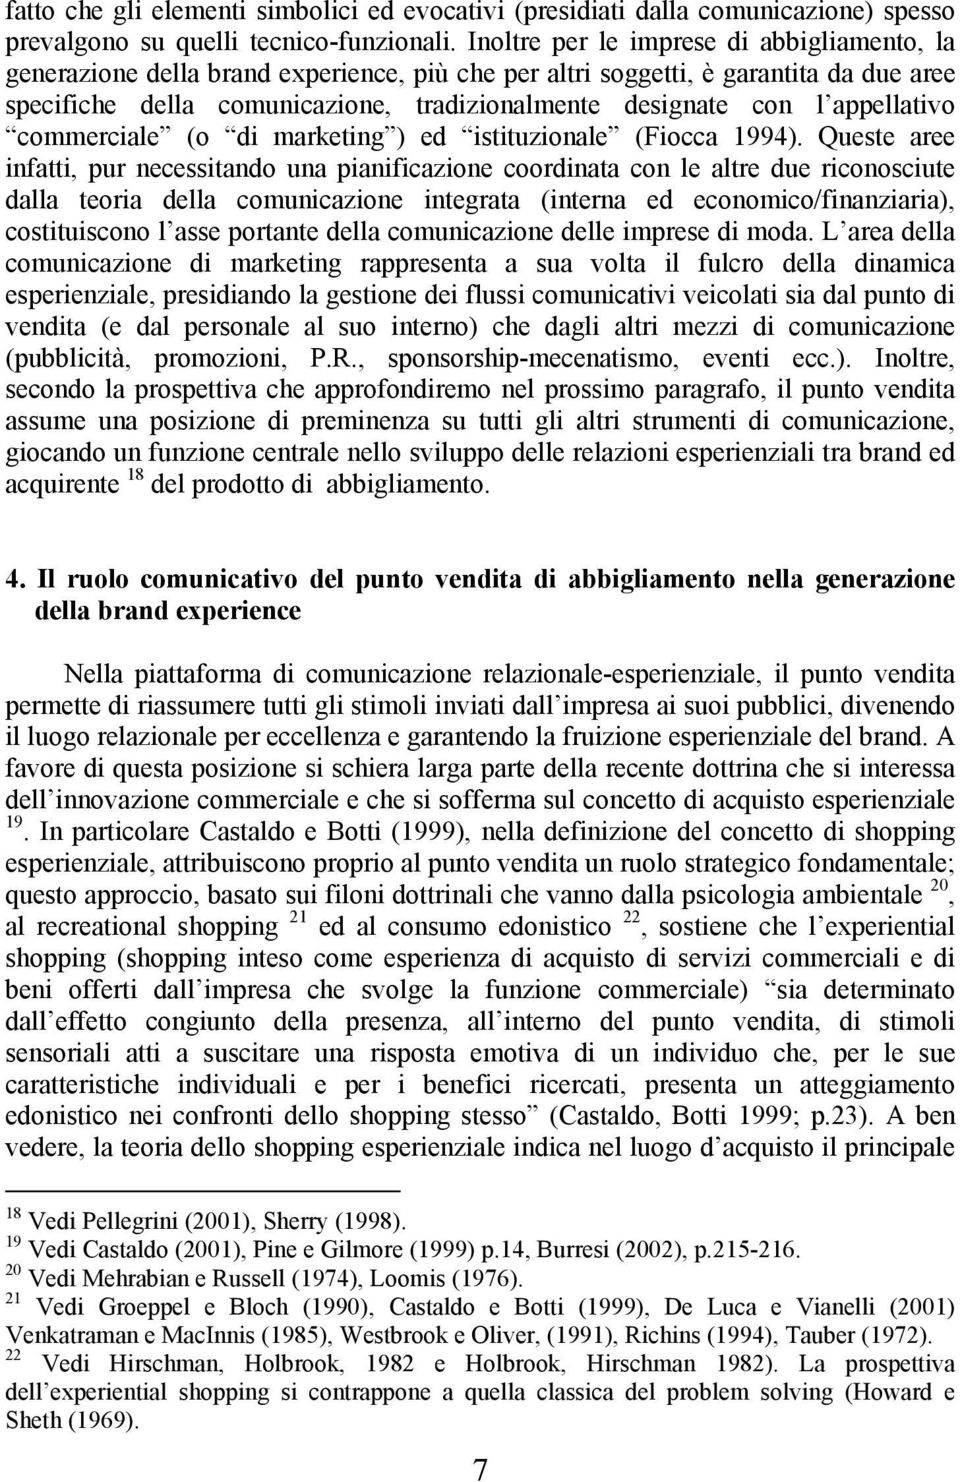 appellativo commerciale (o di marketing ) ed istituzionale (Fiocca 1994).